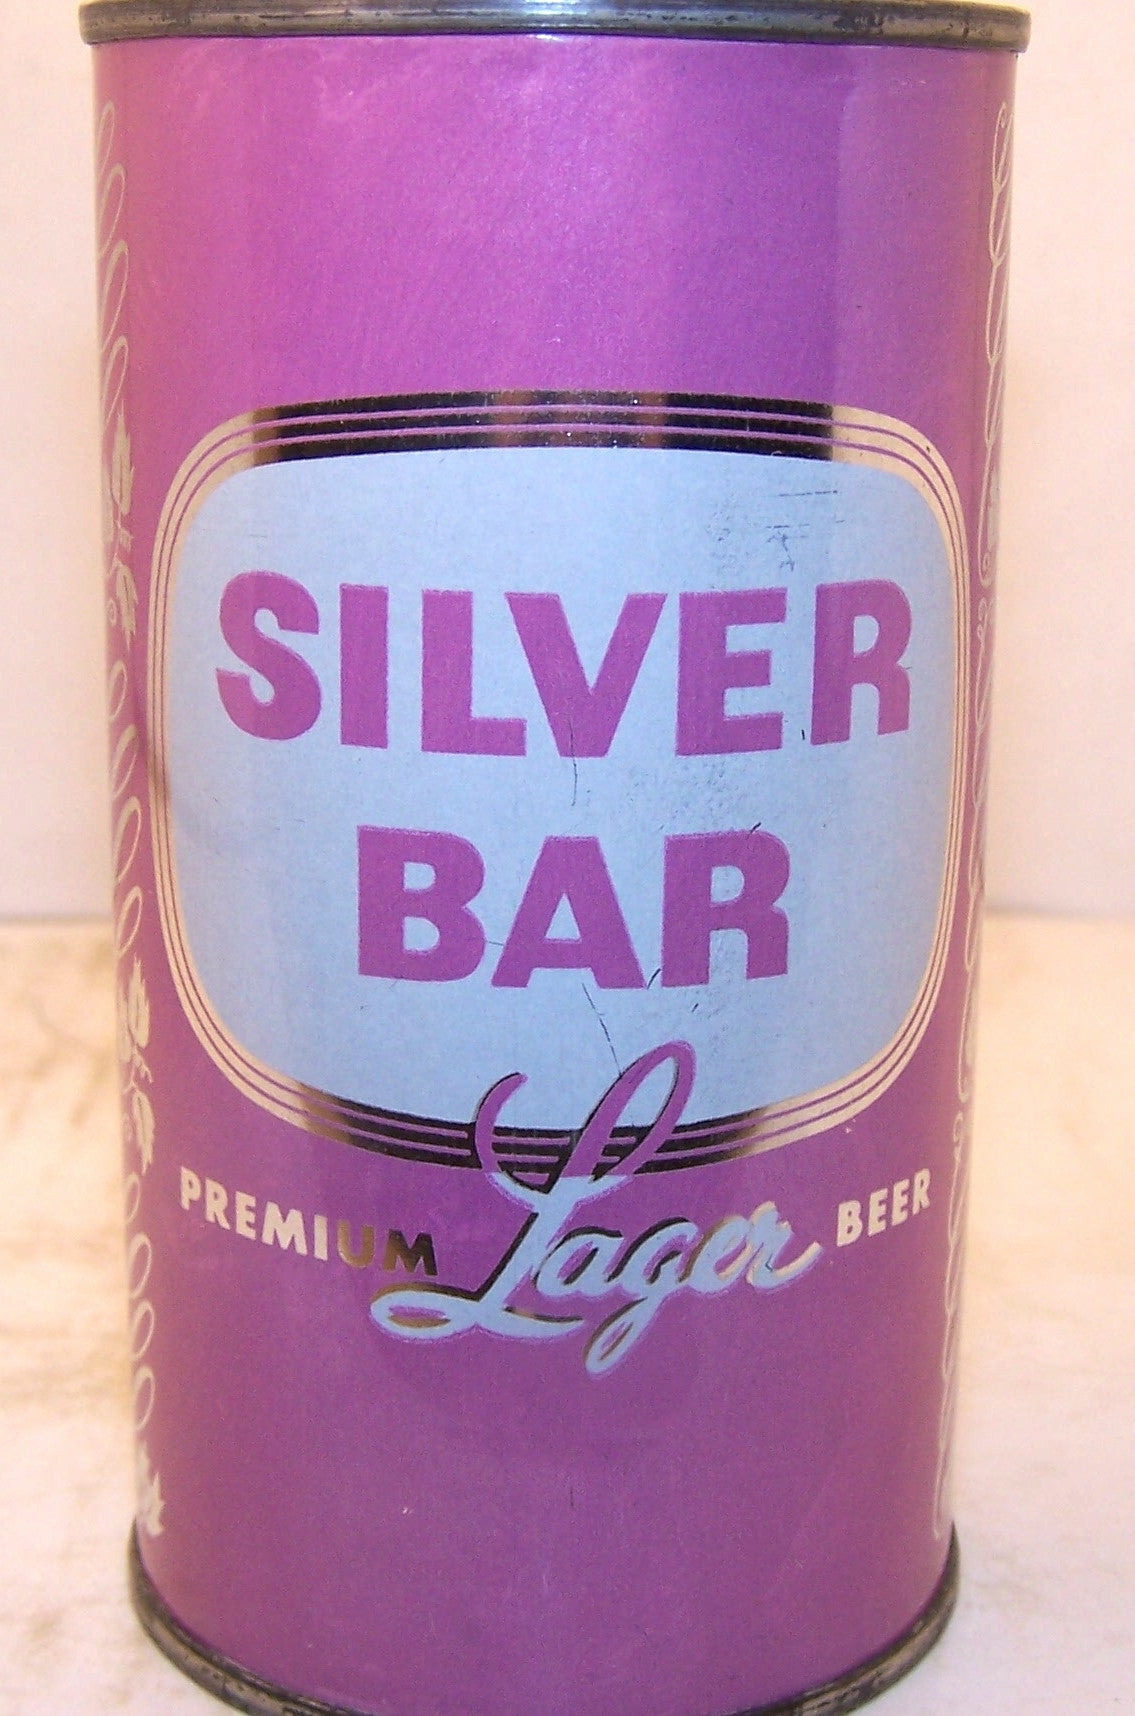 Silver Bar premium Lager beer (pink set can) USBC 134-8, Grade 1 Traded 4/11/15